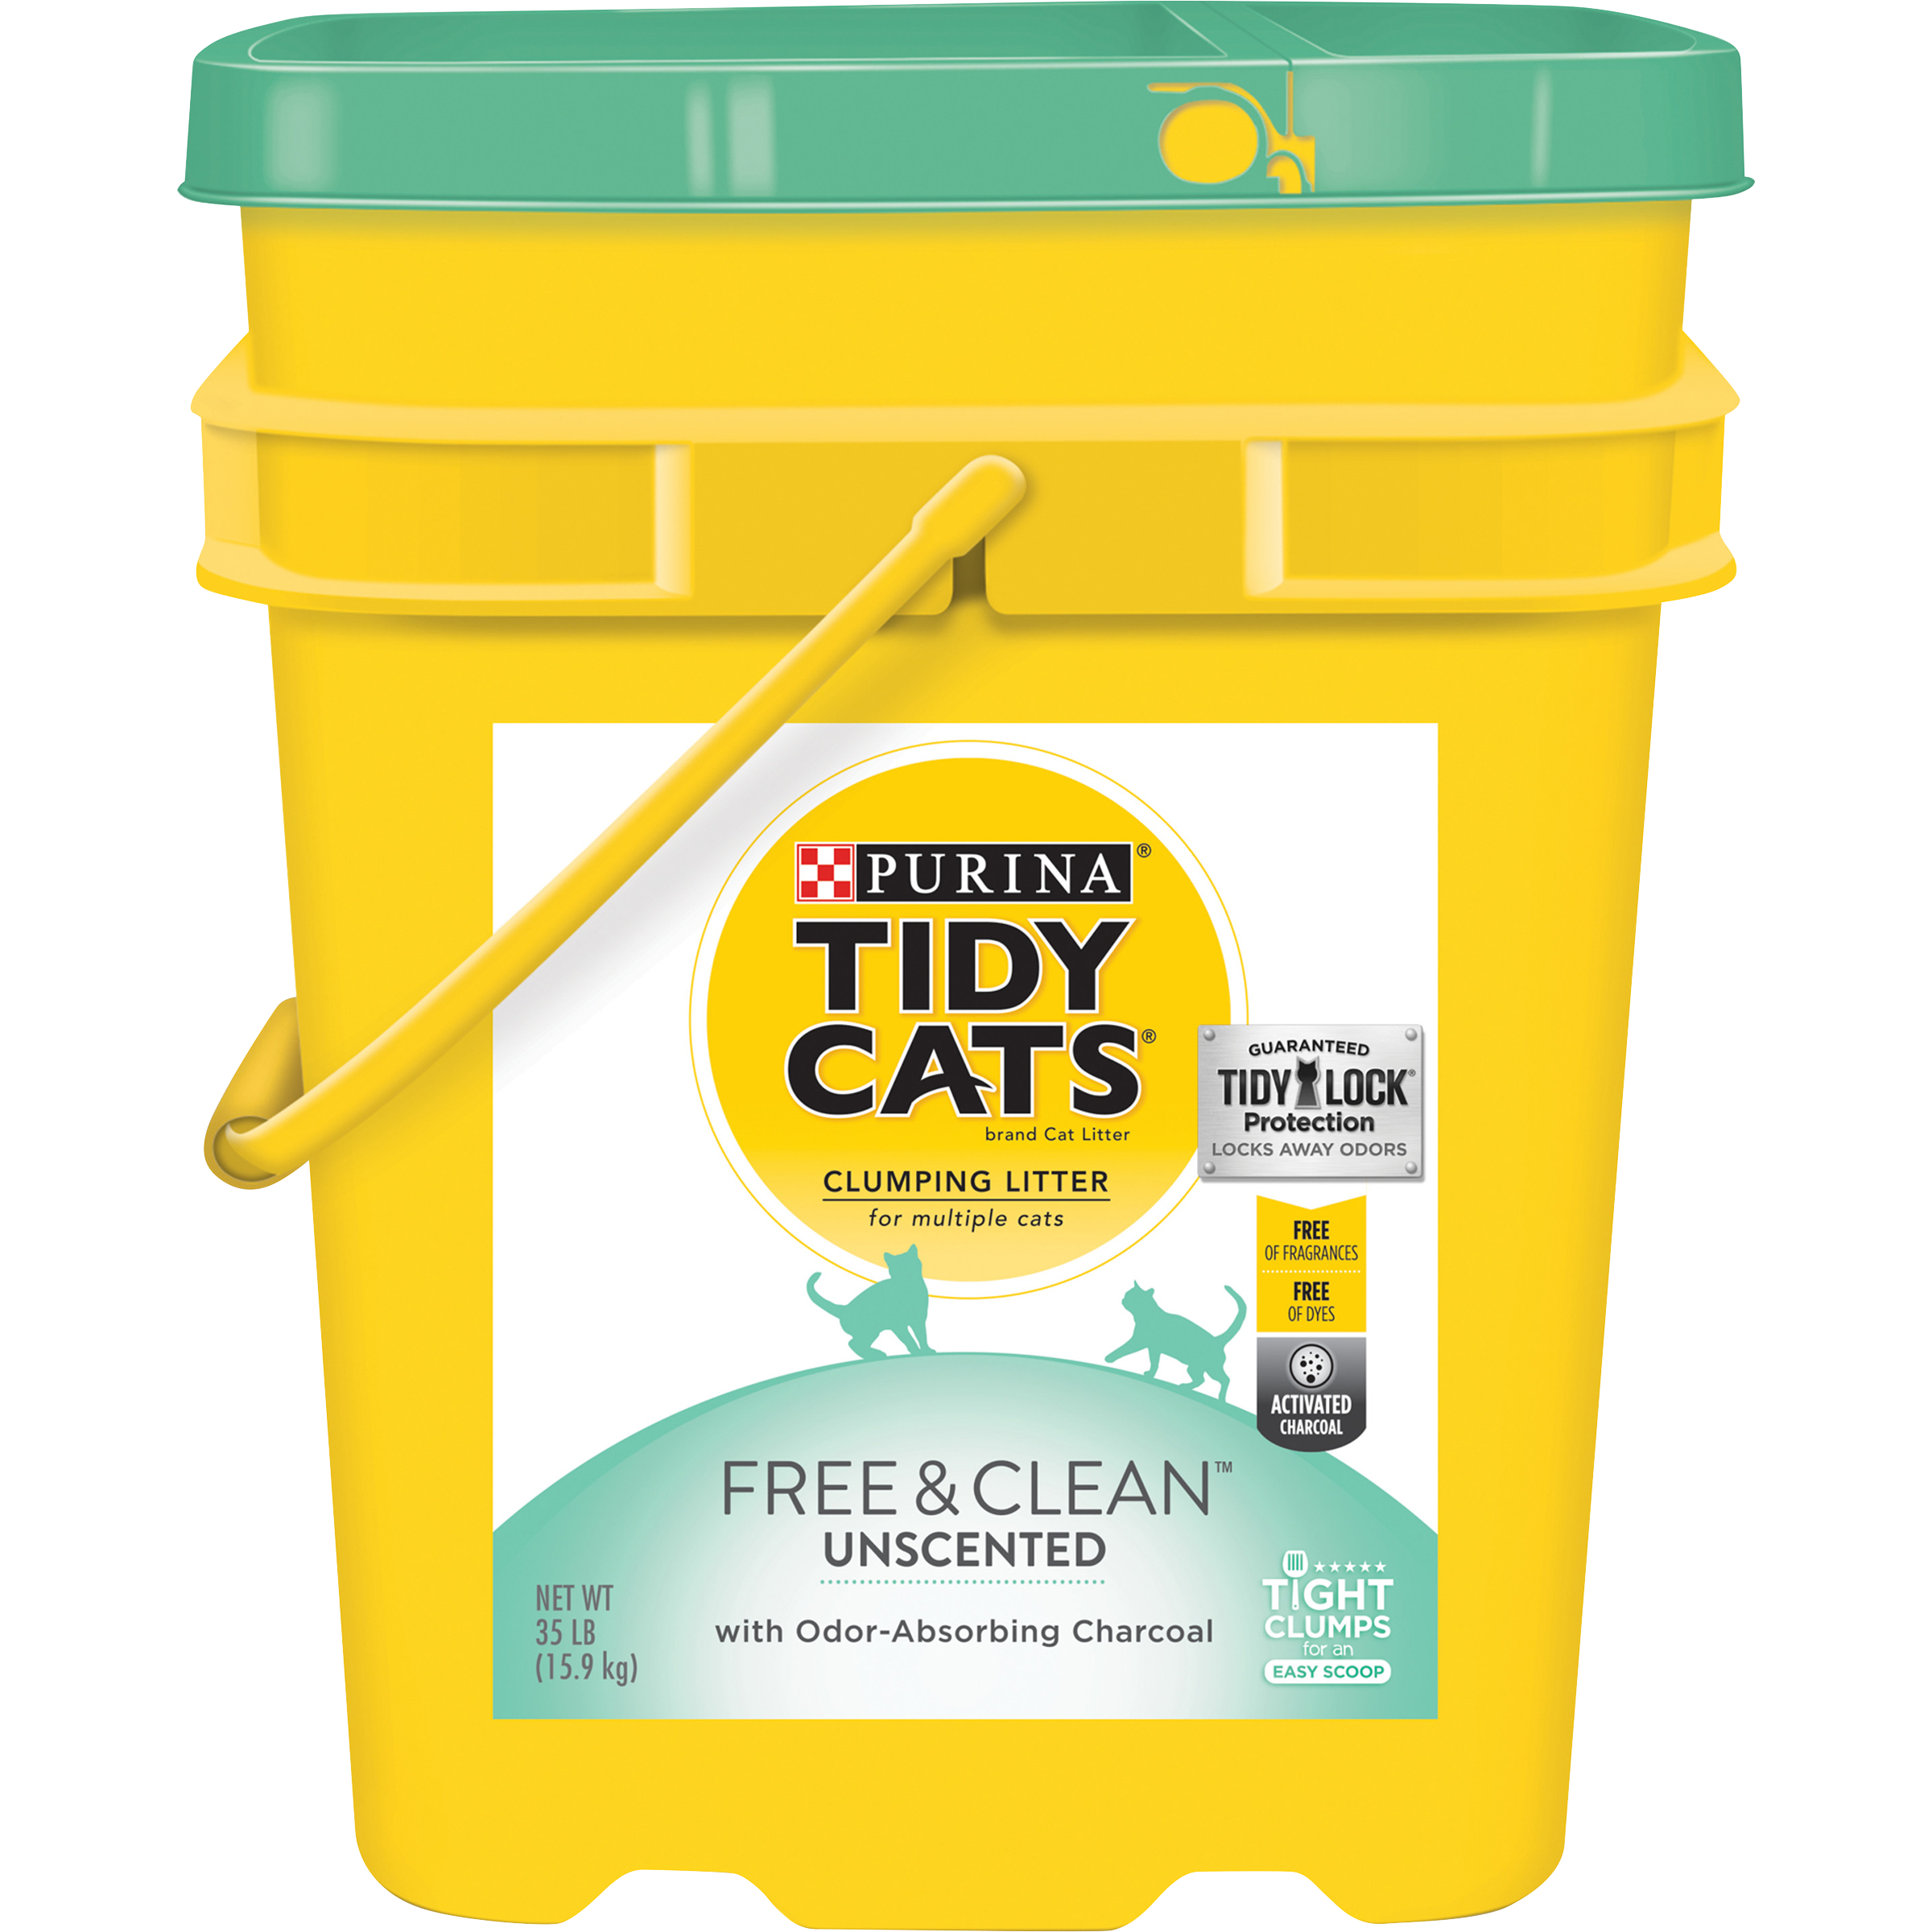 Purina Tidy Cats Clumping Cat Litter, Free & Clean Unscented Multi Cat Litter, 35 lb. Pail